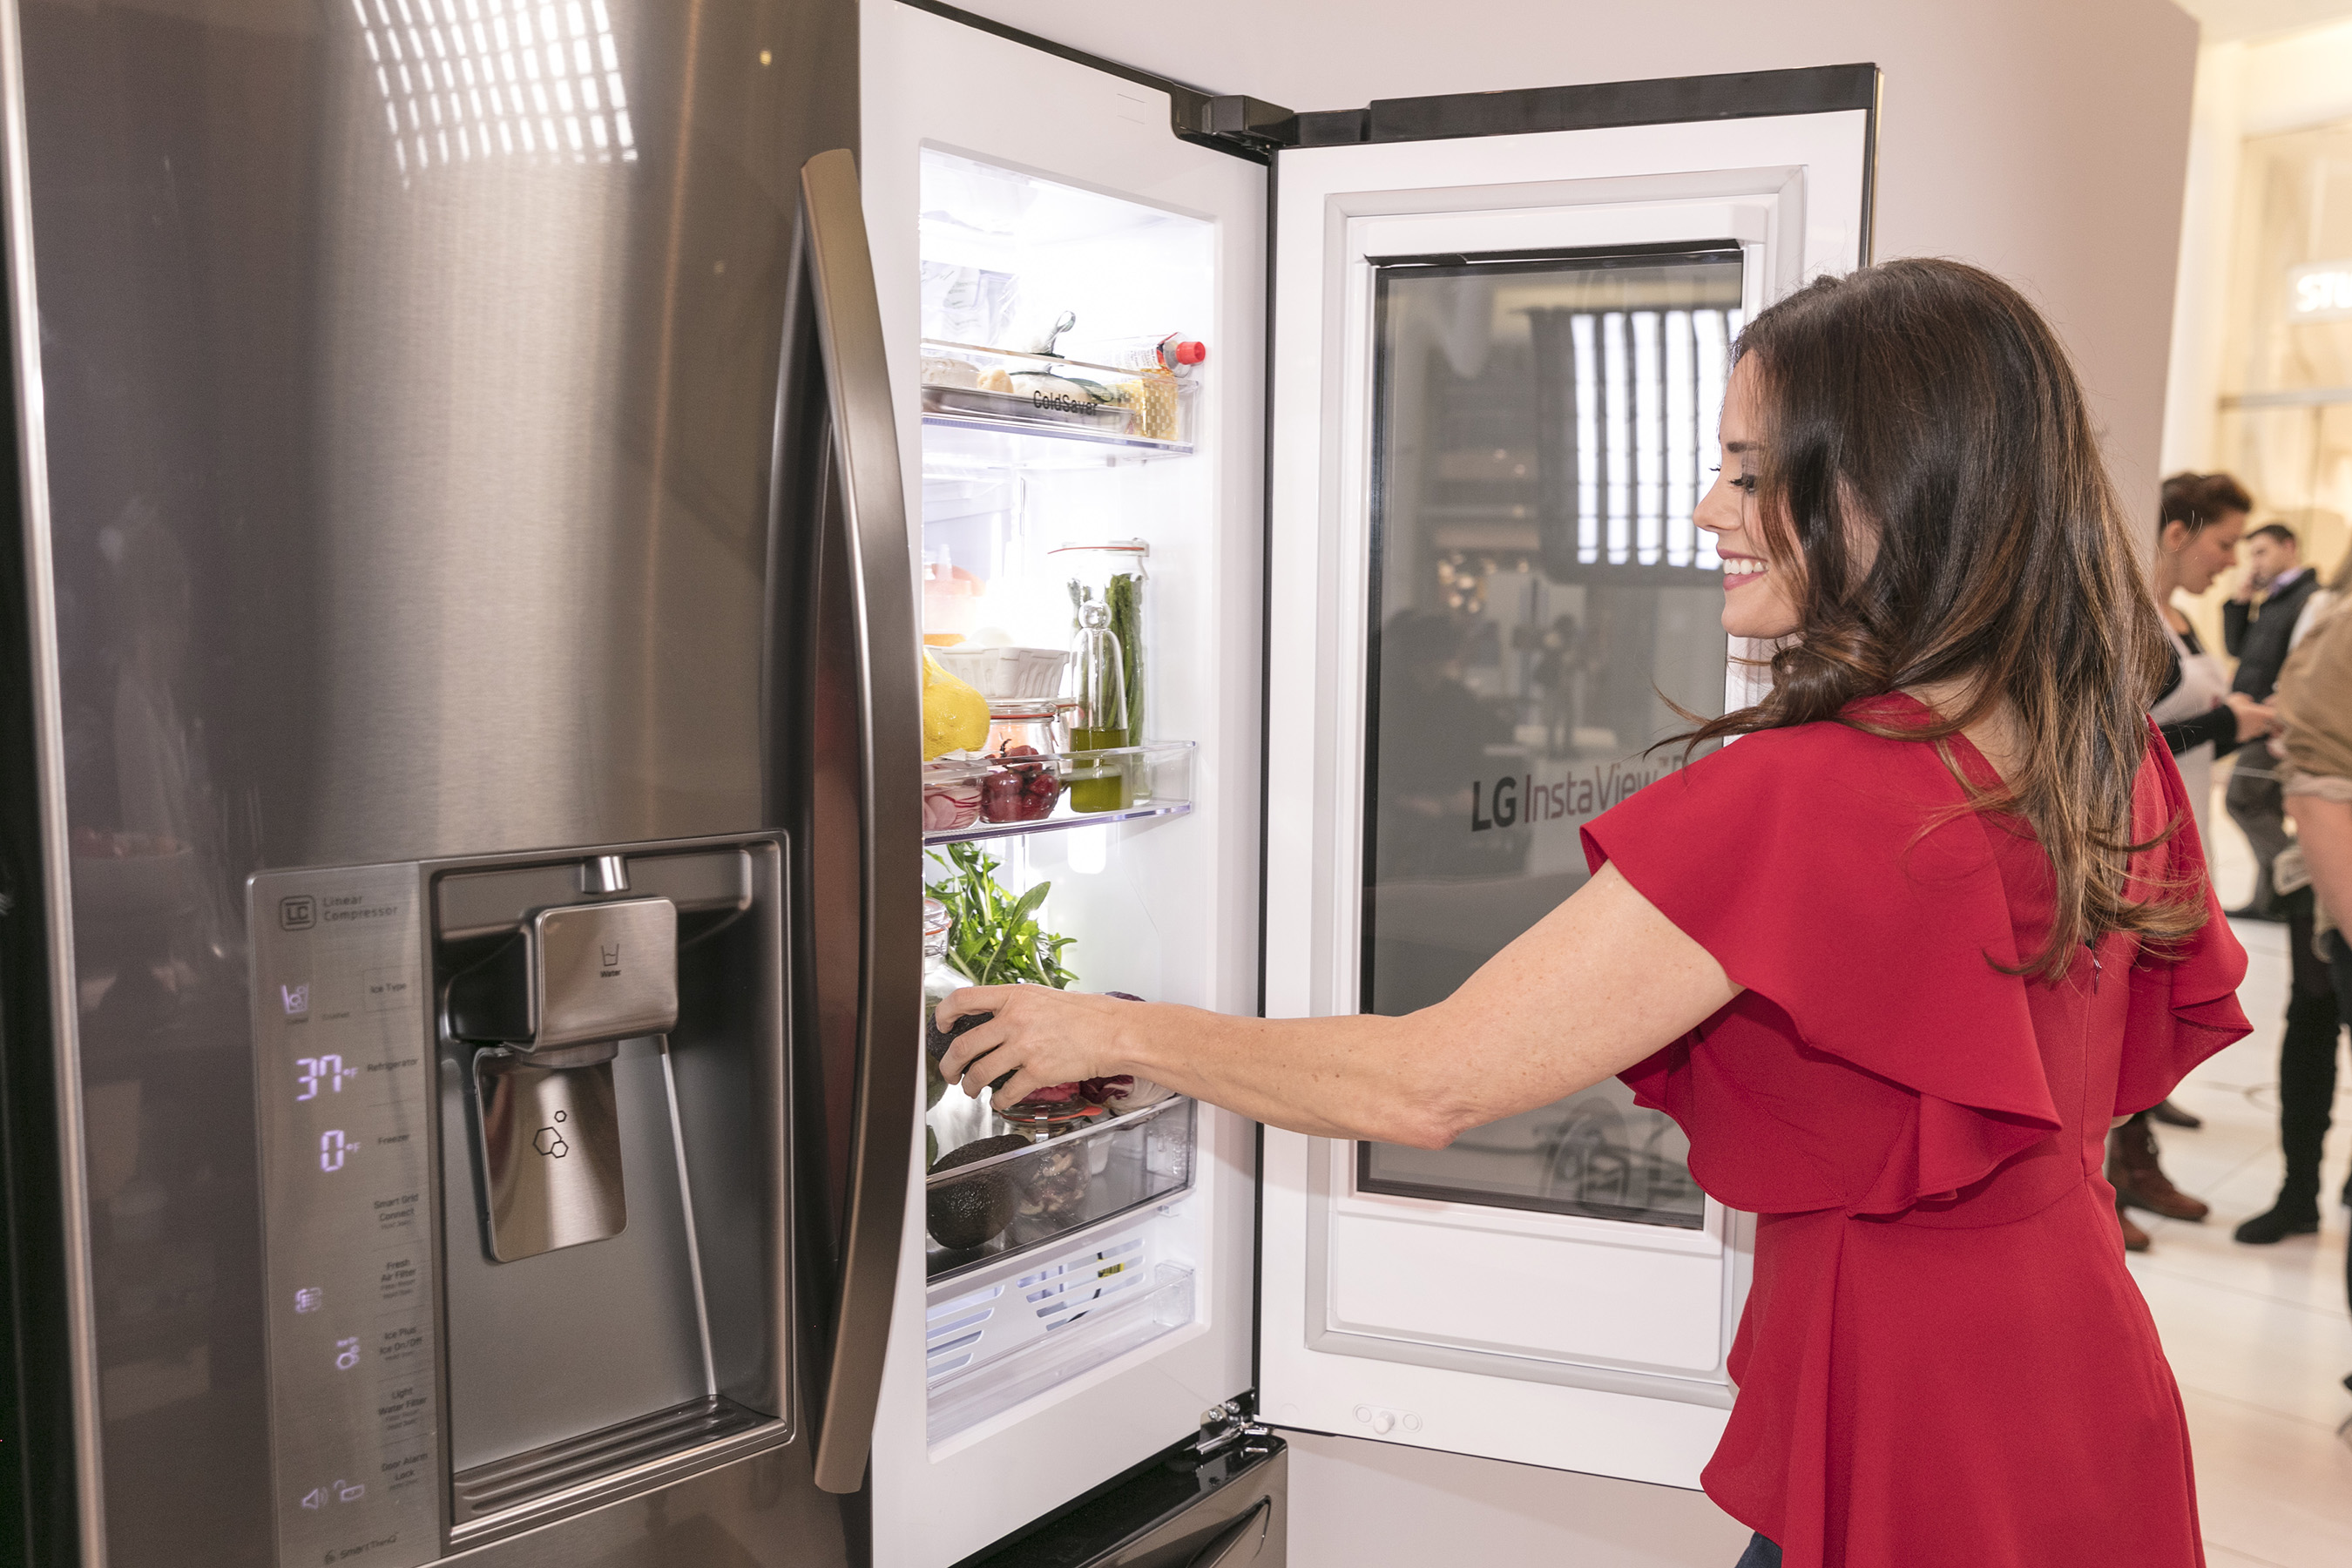 "Celebrity nutritionist Keri Glassman arranges her ""Healthy Shelfie"" at an LG InstaView Refrigerator event on March 7, 2017 in New York, by knocking twice to light up the LG InstaView fridge's glass panel. Glassman shows how simple organization tips, like keeping healthy food options front and center, can help you achieve a healthier lifestyle."